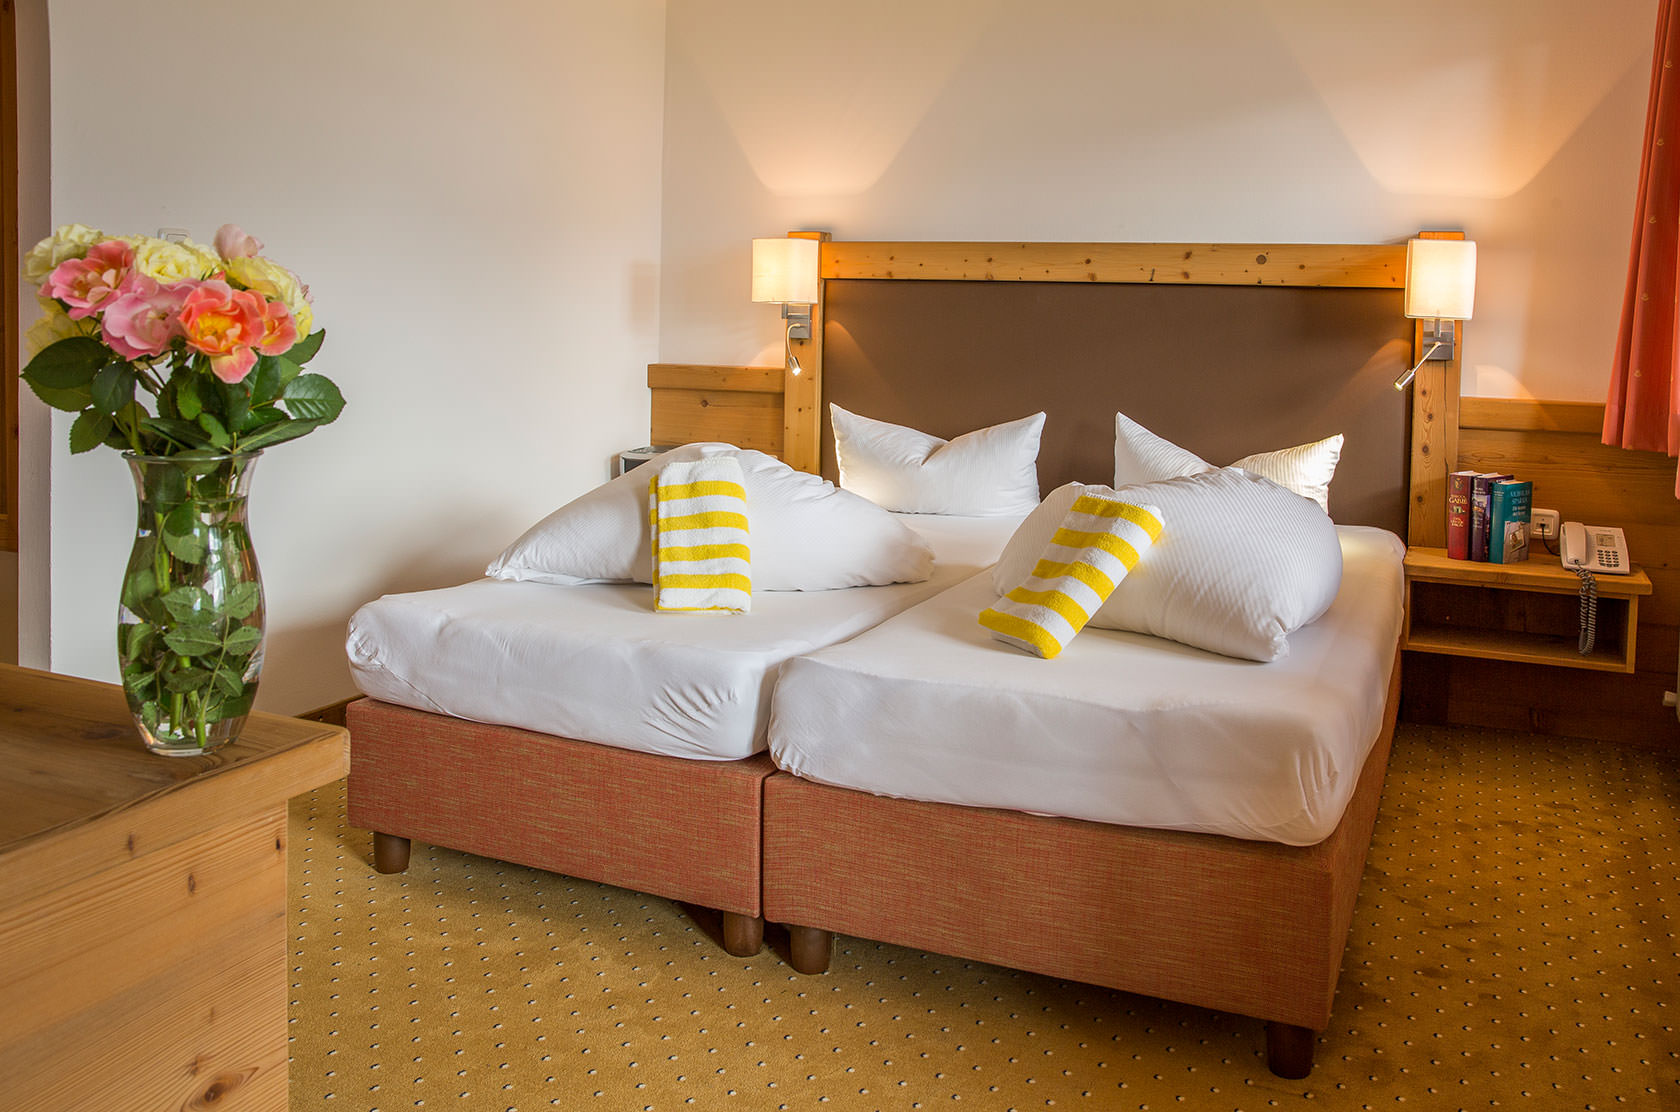 Double bed in the category spruce in the hotel Kristall